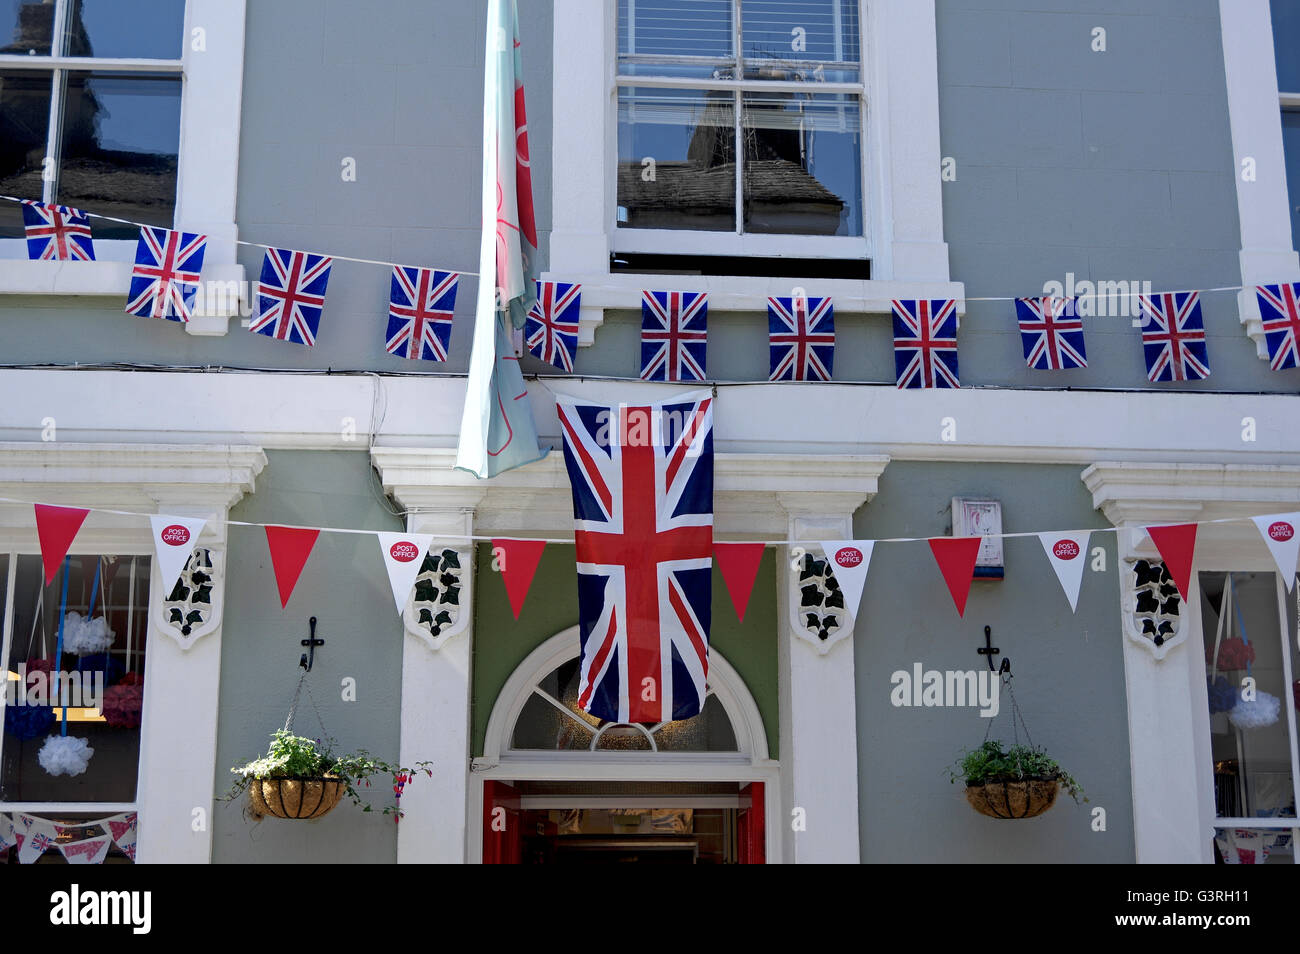 Bunting hanging outside the Post Office in Ashburton in preparation for the Queen's 90th birthday celebrations. - Stock Image